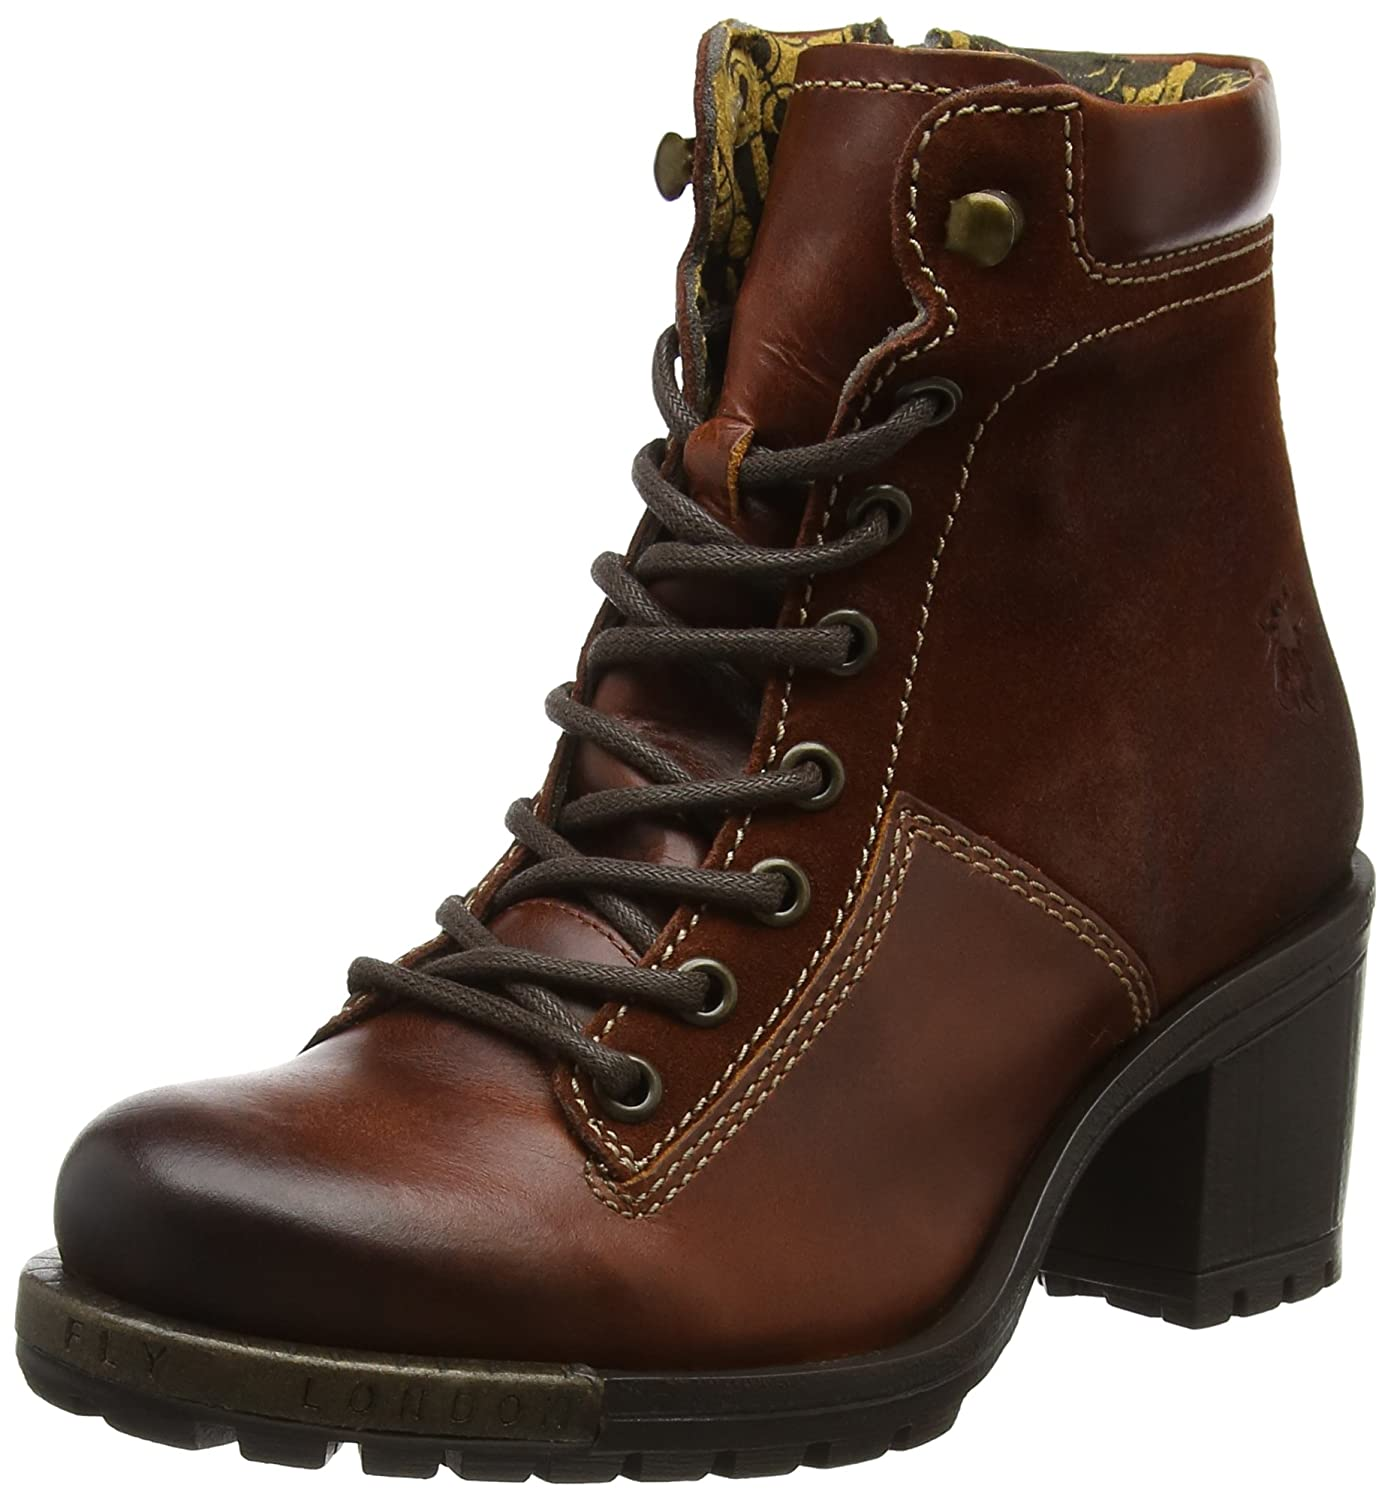 Fly London Leal689fly, Botas para Mujer41 EU|Marrón (Brick)